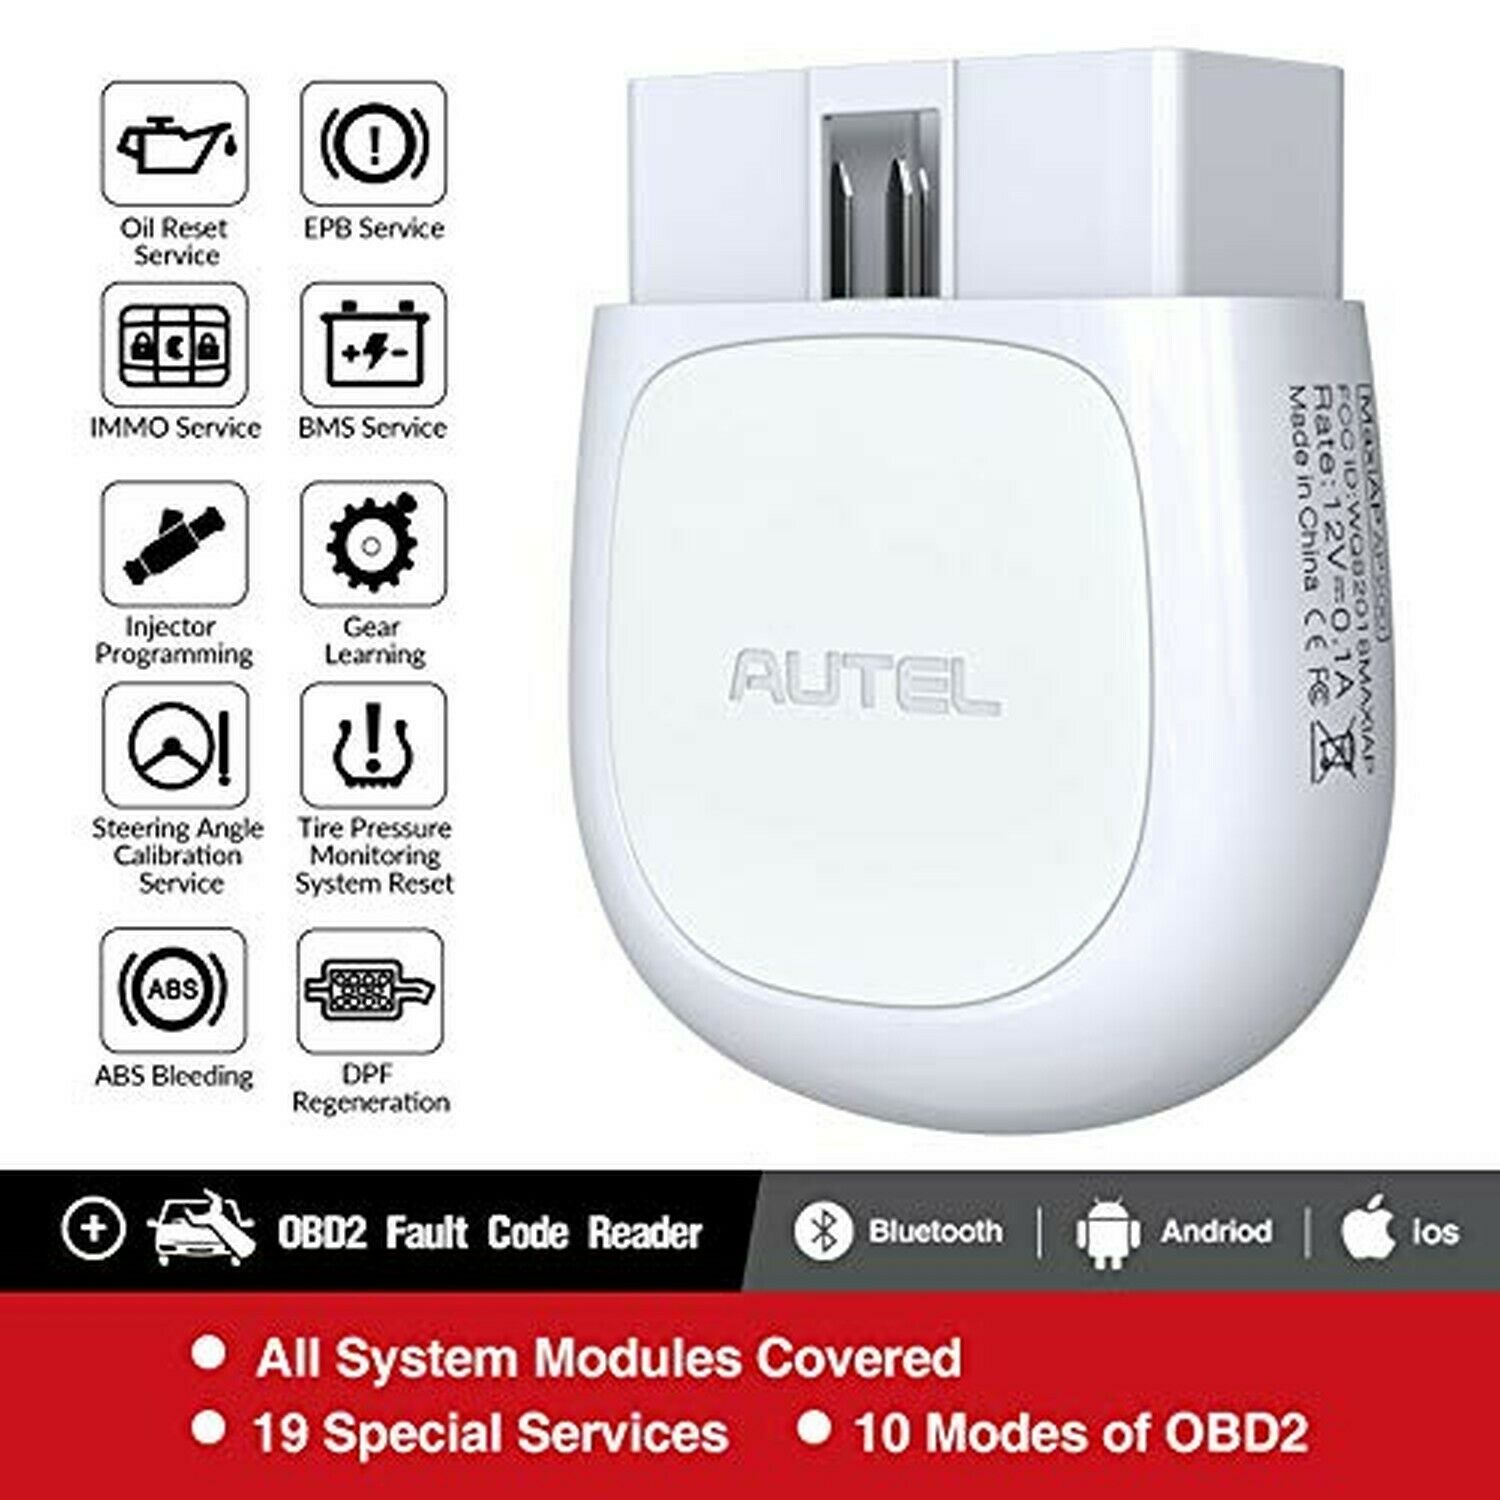 Autel AP200 Bluetooth Connector OBD2 Scanner OBD 2 Code Reader Full Systems Diagnoses AutoVIN TPMS IMMO Service PK MX808 Mk808|Code Readers & Scan Tools| - AliExpress